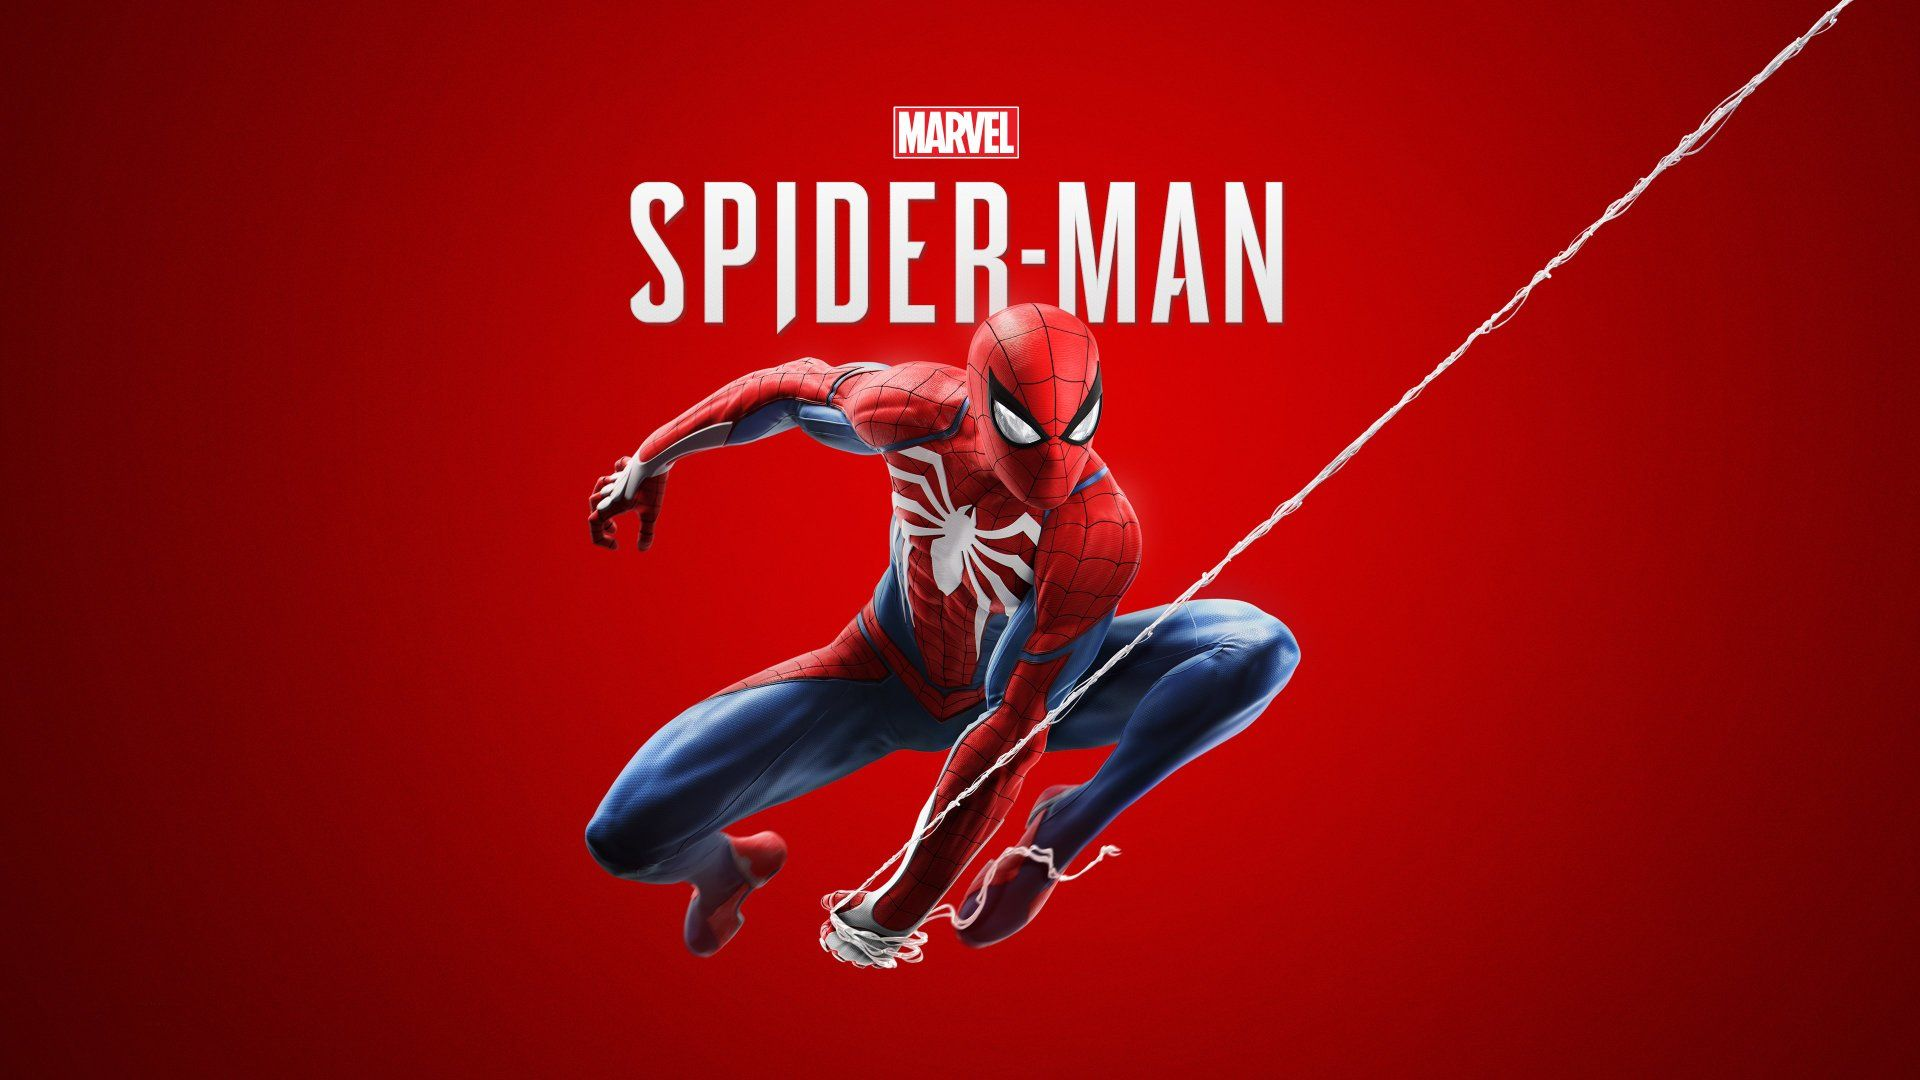 10 Marvel S Spider Man Hd Wallpapers High Quality Background Marvel Spiderman Spiderman Spiderman Ps4